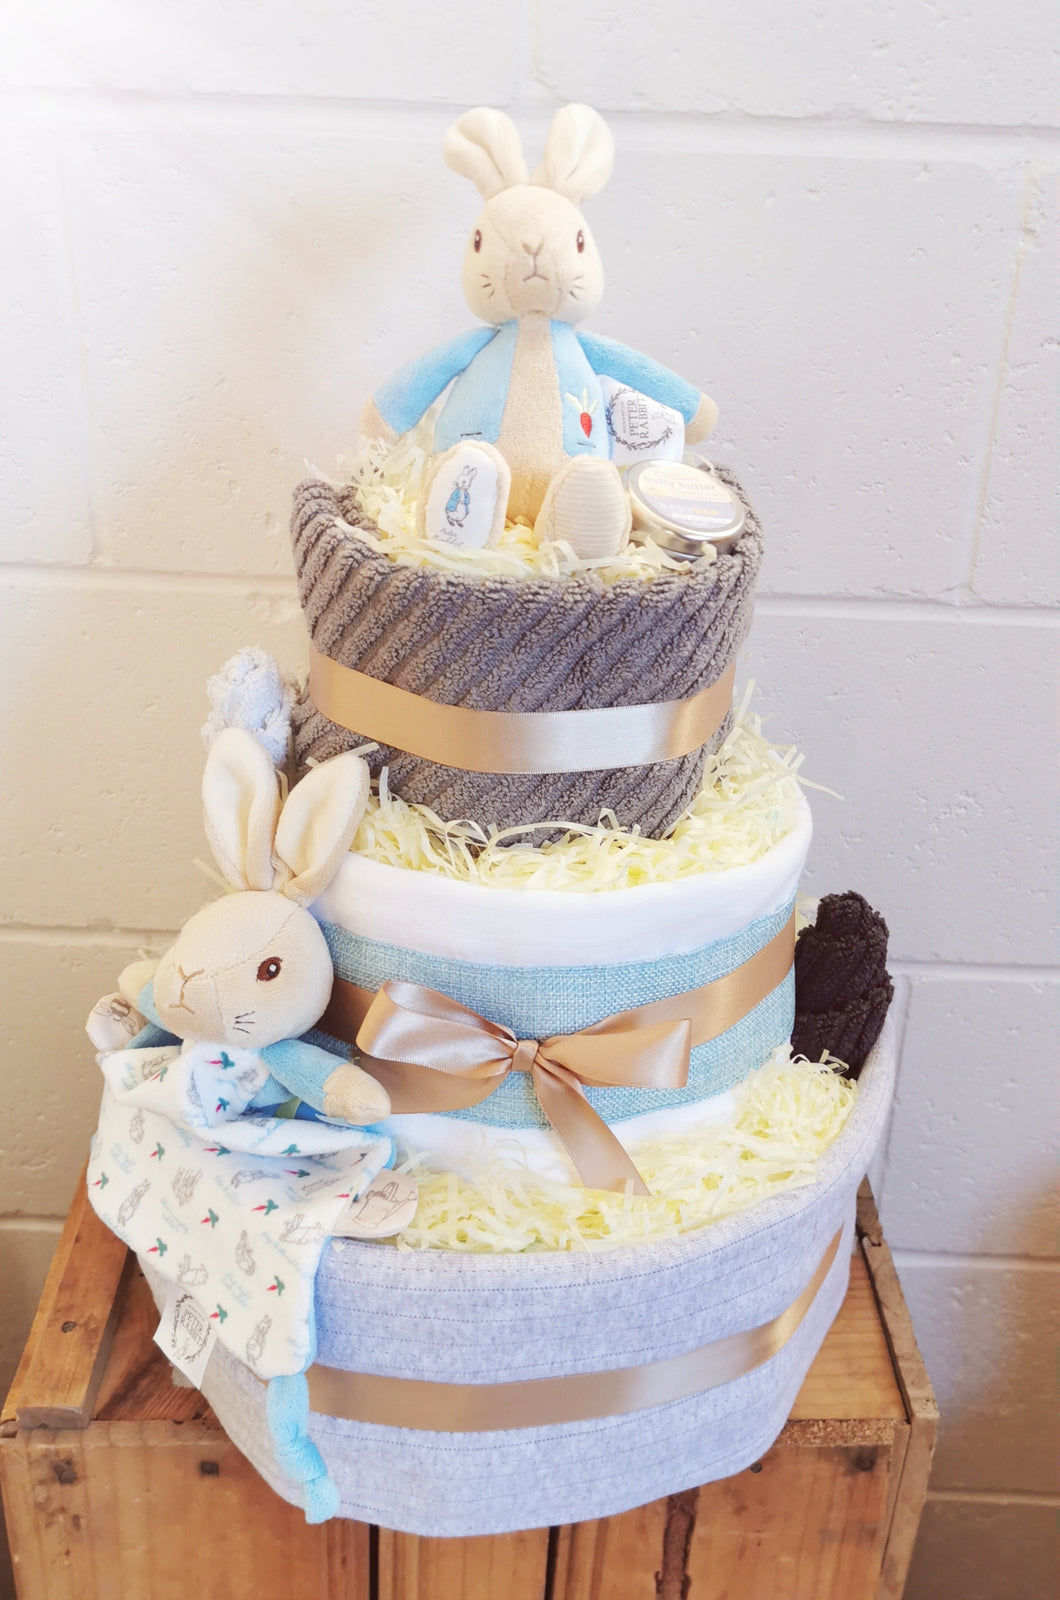 Peter rabbit - 3 tier nappy cake